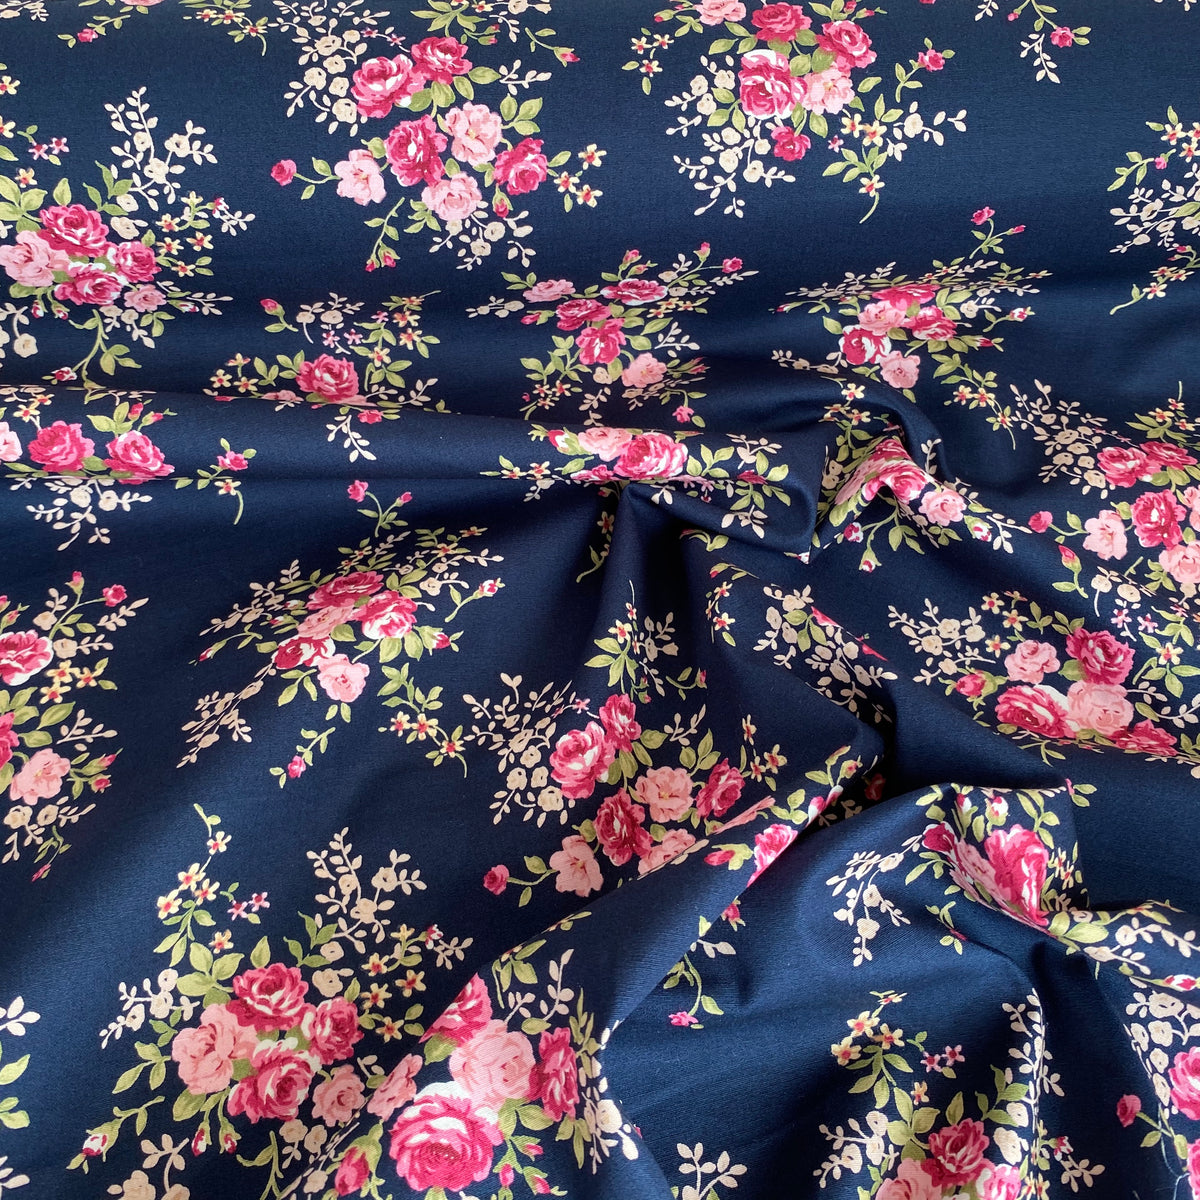 Sophie Floral Roses, navy blue Fabric, 112cm wide, 100% Cotton Poplin Fabric by the half metre